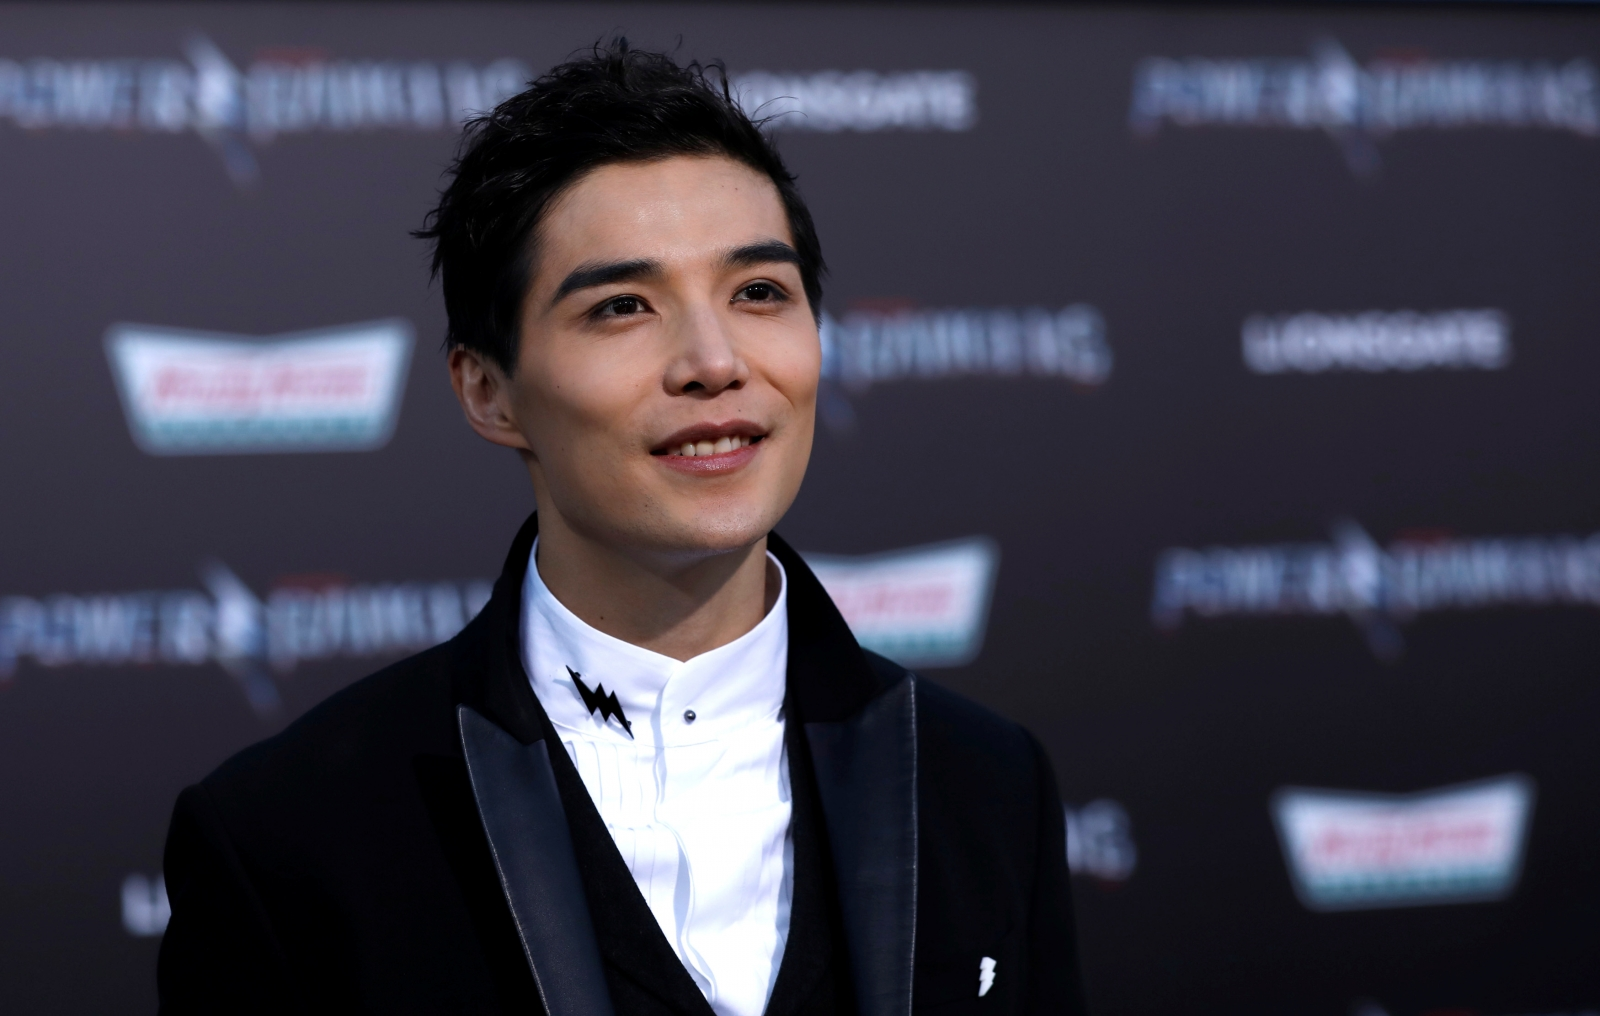 Aquaman casts Power Rangers actor Ludi Lin as DC Comics character Murk